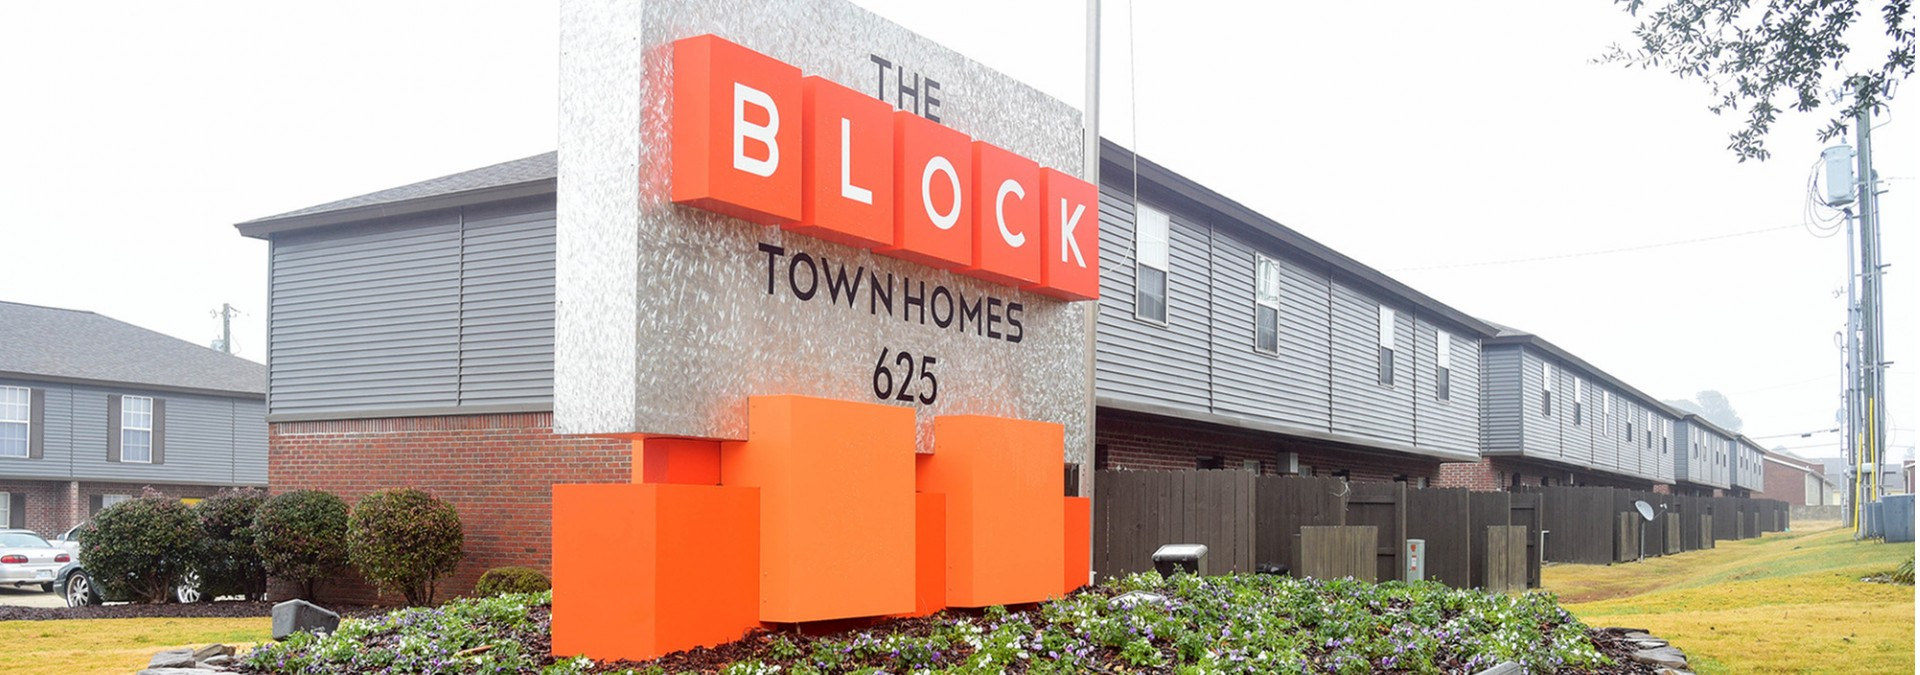 The Block Townhomes